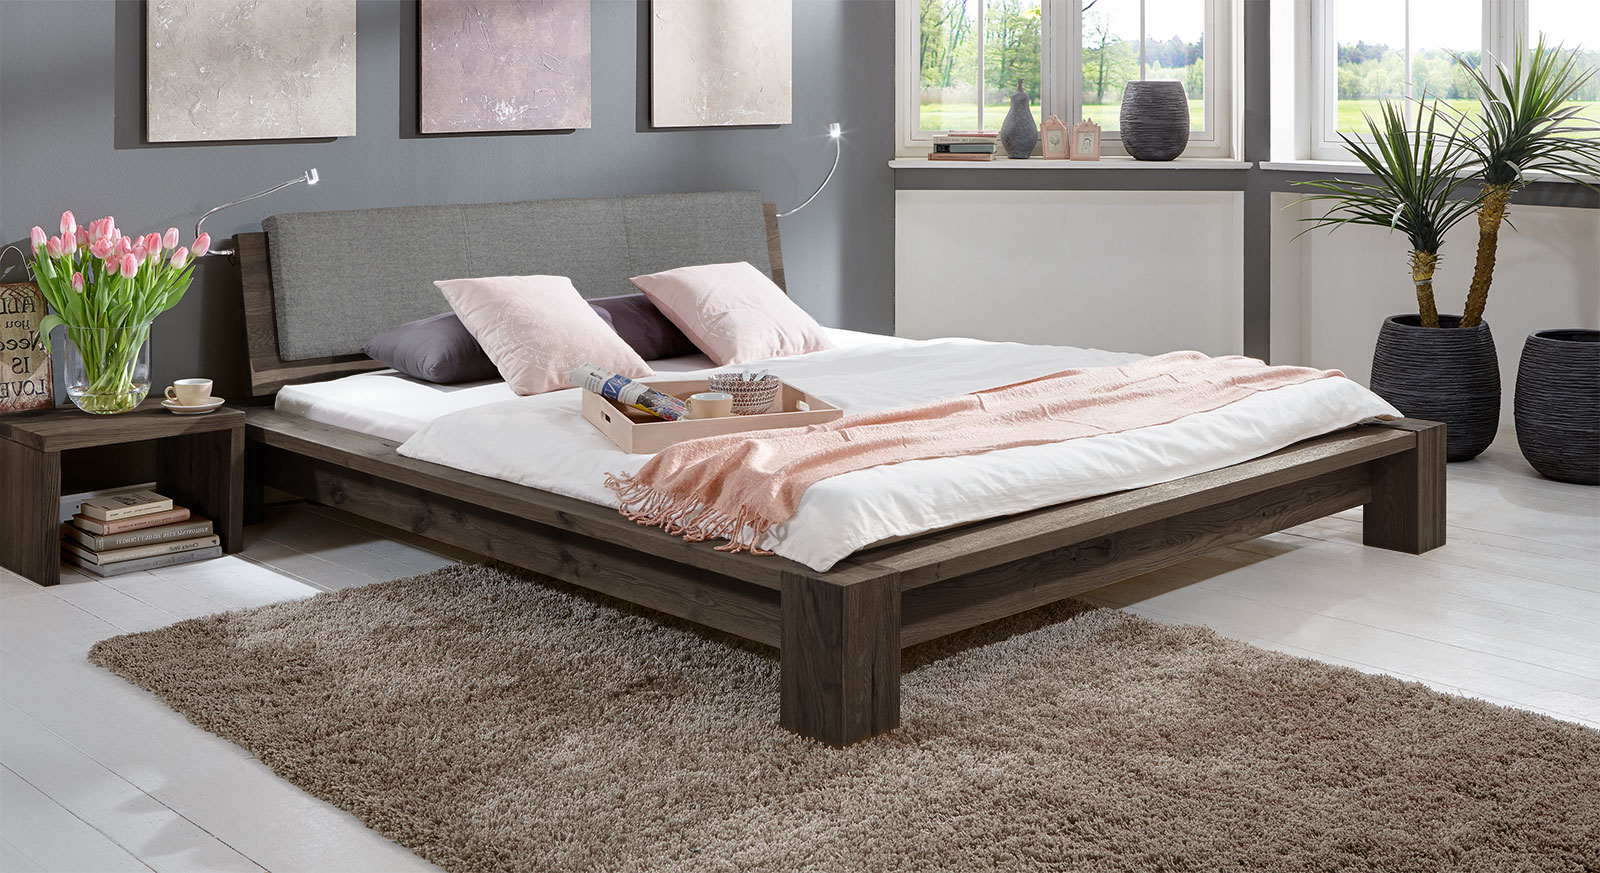 Hochwertiges Design-Massivholzbett Domingo aus stabiler WIldeiche in Coffee.